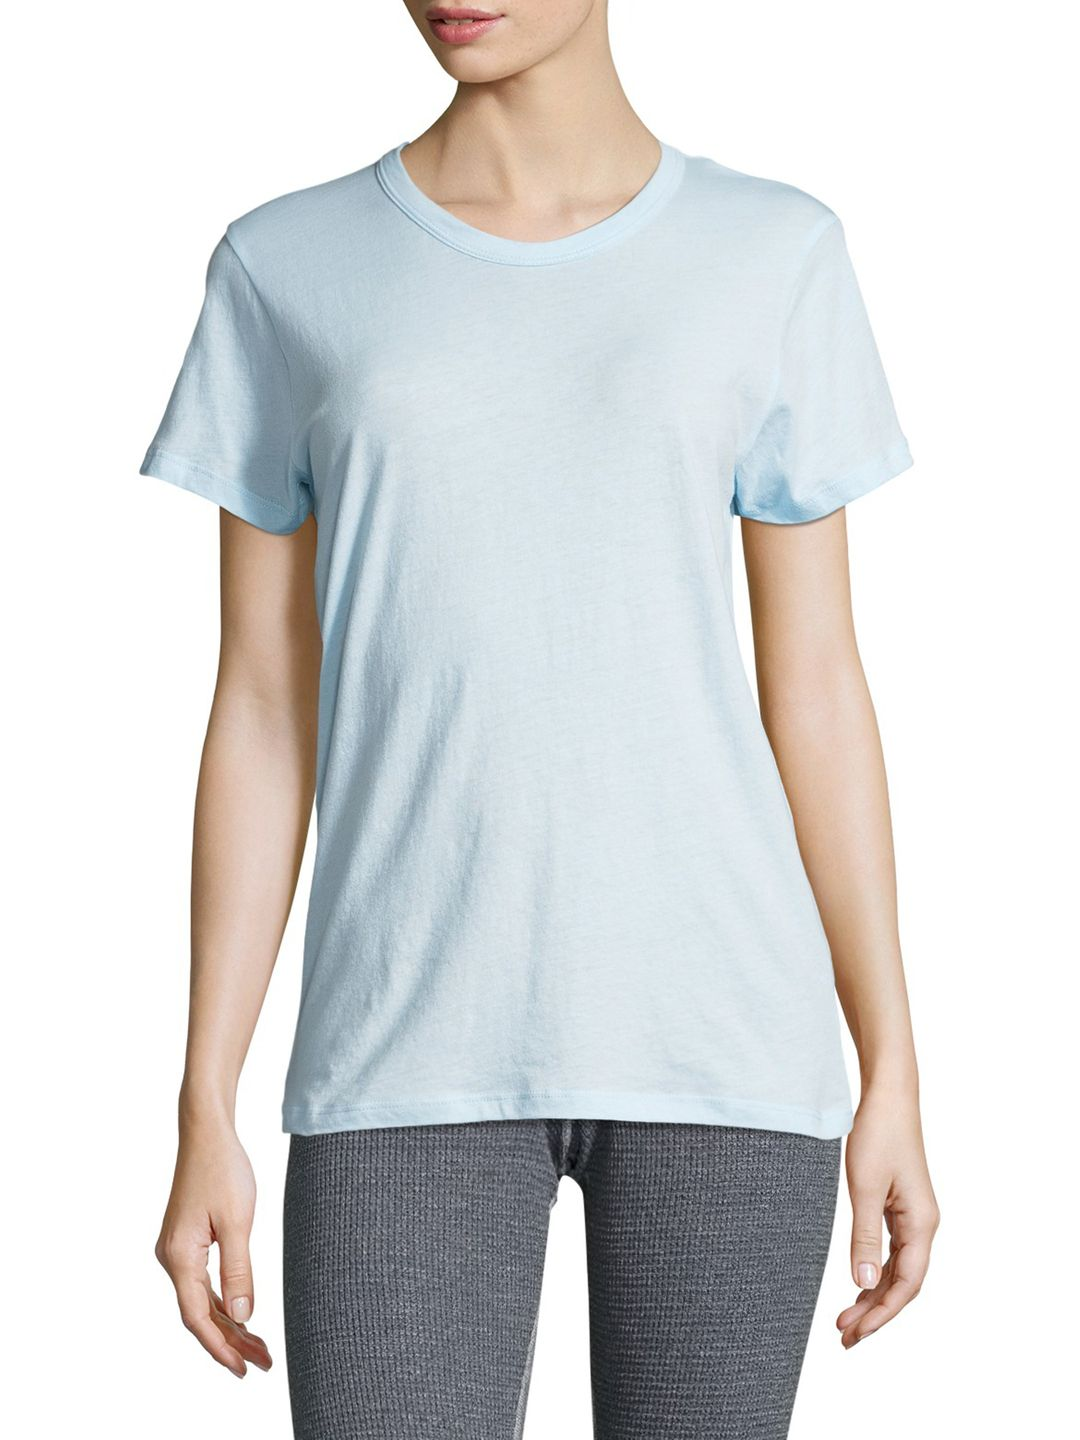 Monrow Woman Cotton-jersey T-shirt Pastel Pink Size L Monrow Cheap Order QrhUfgY8